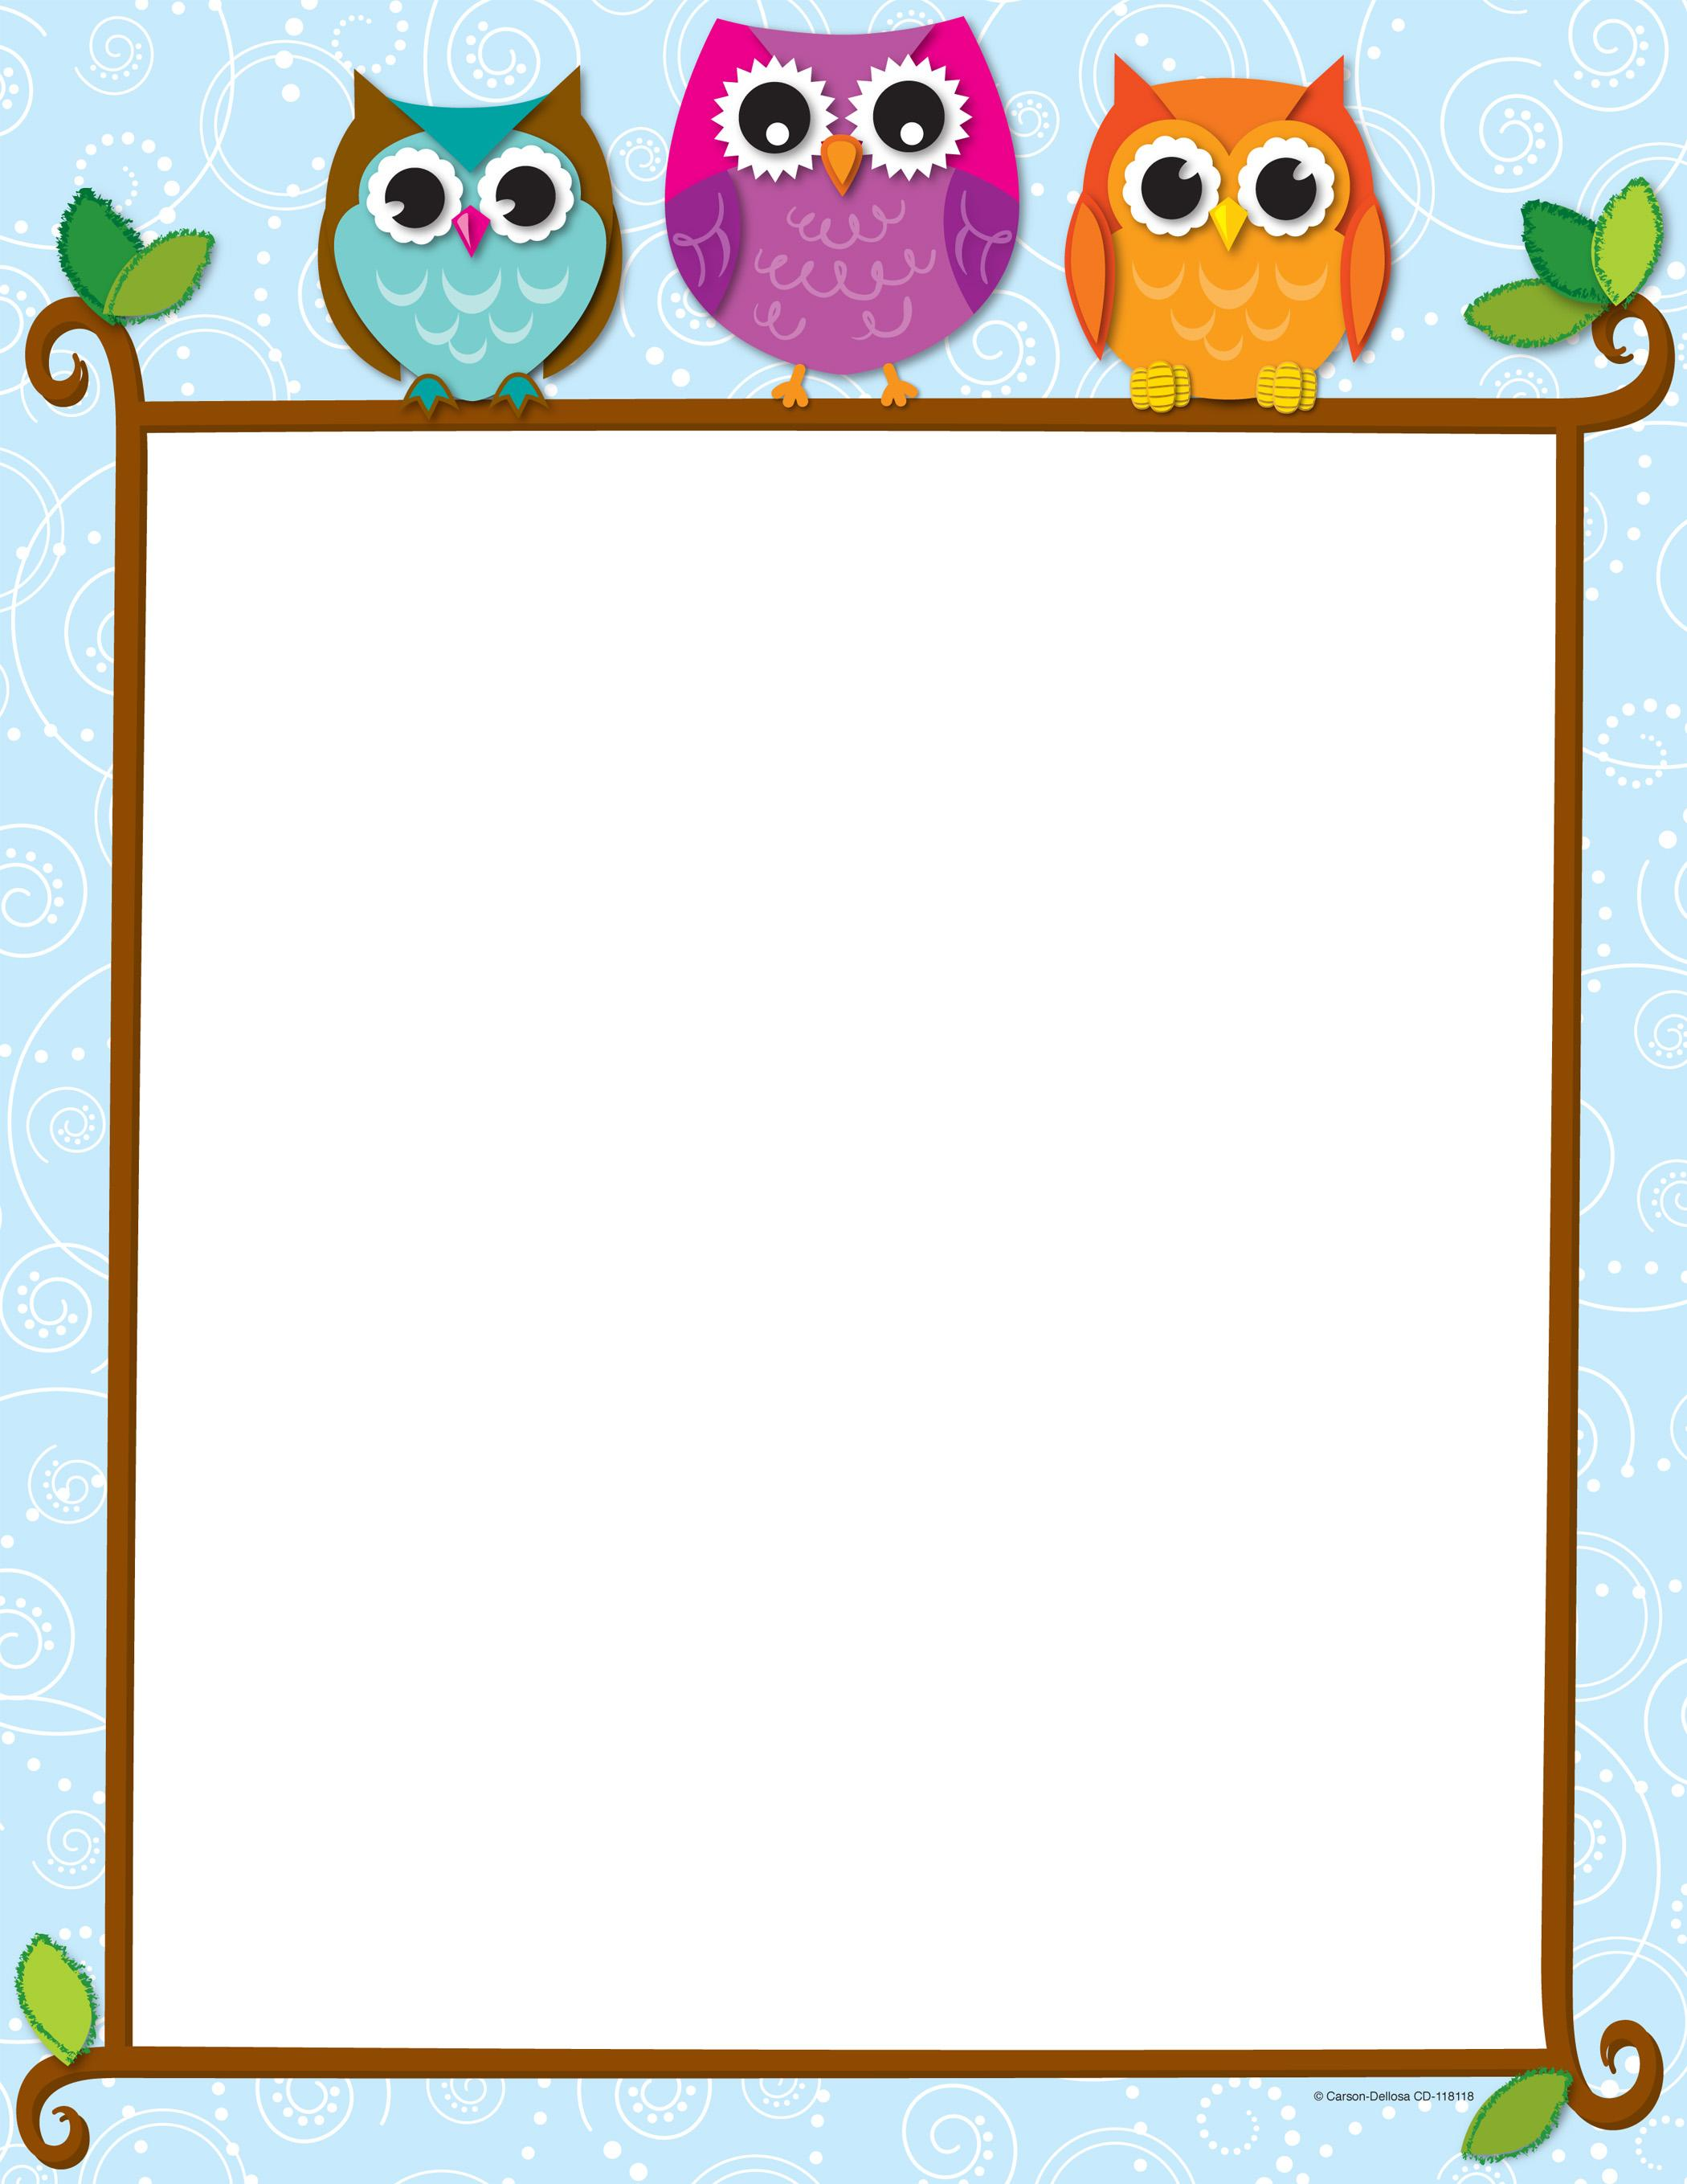 Owl clipart frame Design Owls whimsical Colorful